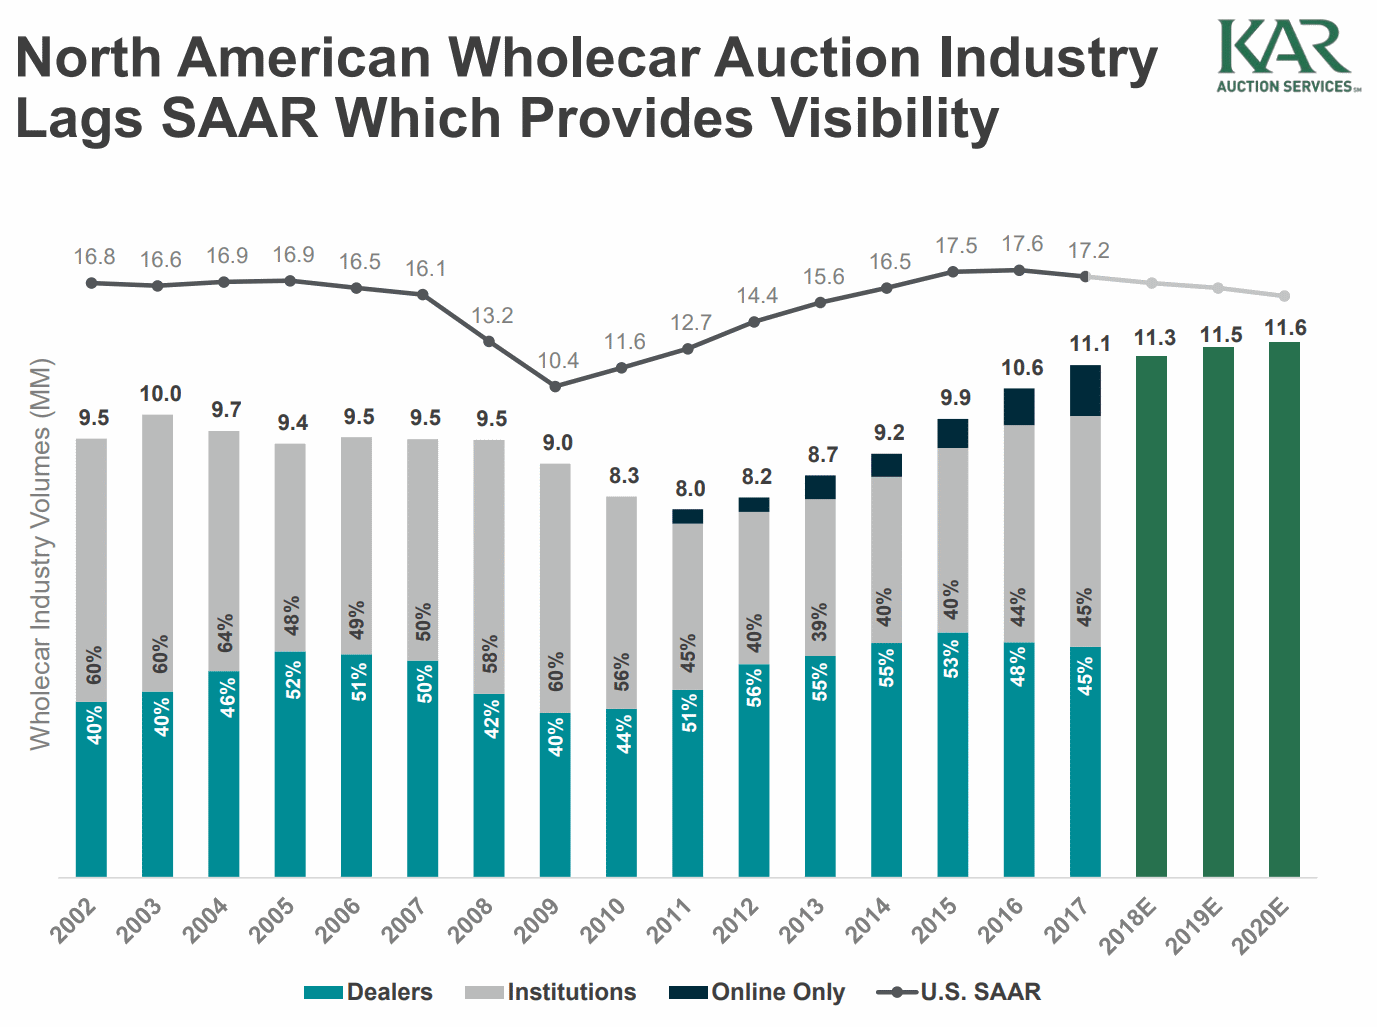 North-American-Wholecar-Auction-Industry-Lags-SAAR